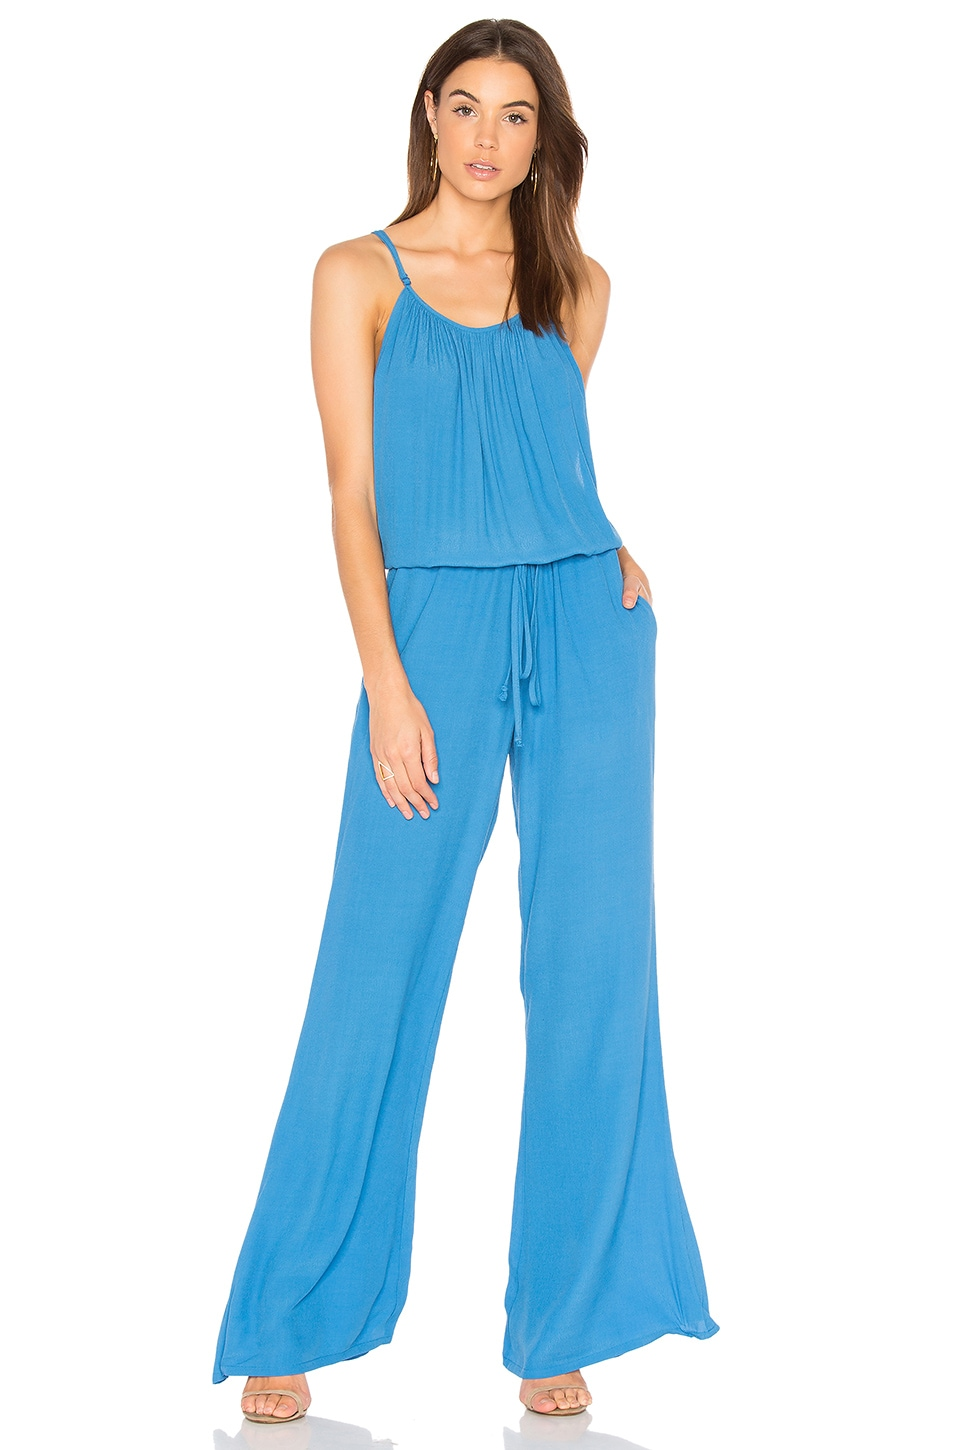 BLQ BASIQ Jumpsuit in Denim Blue